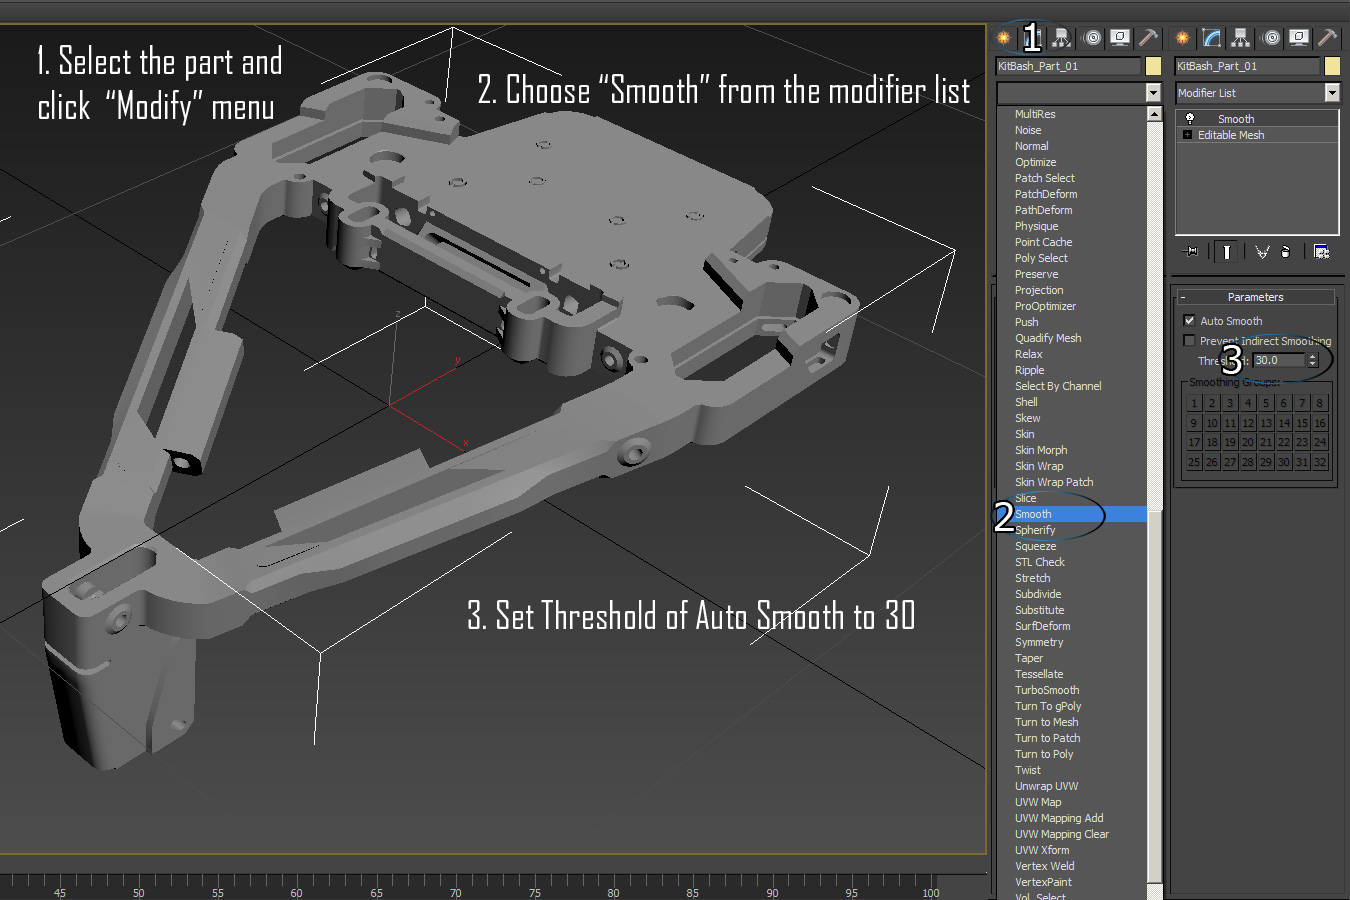 Settings for 3Ds Max